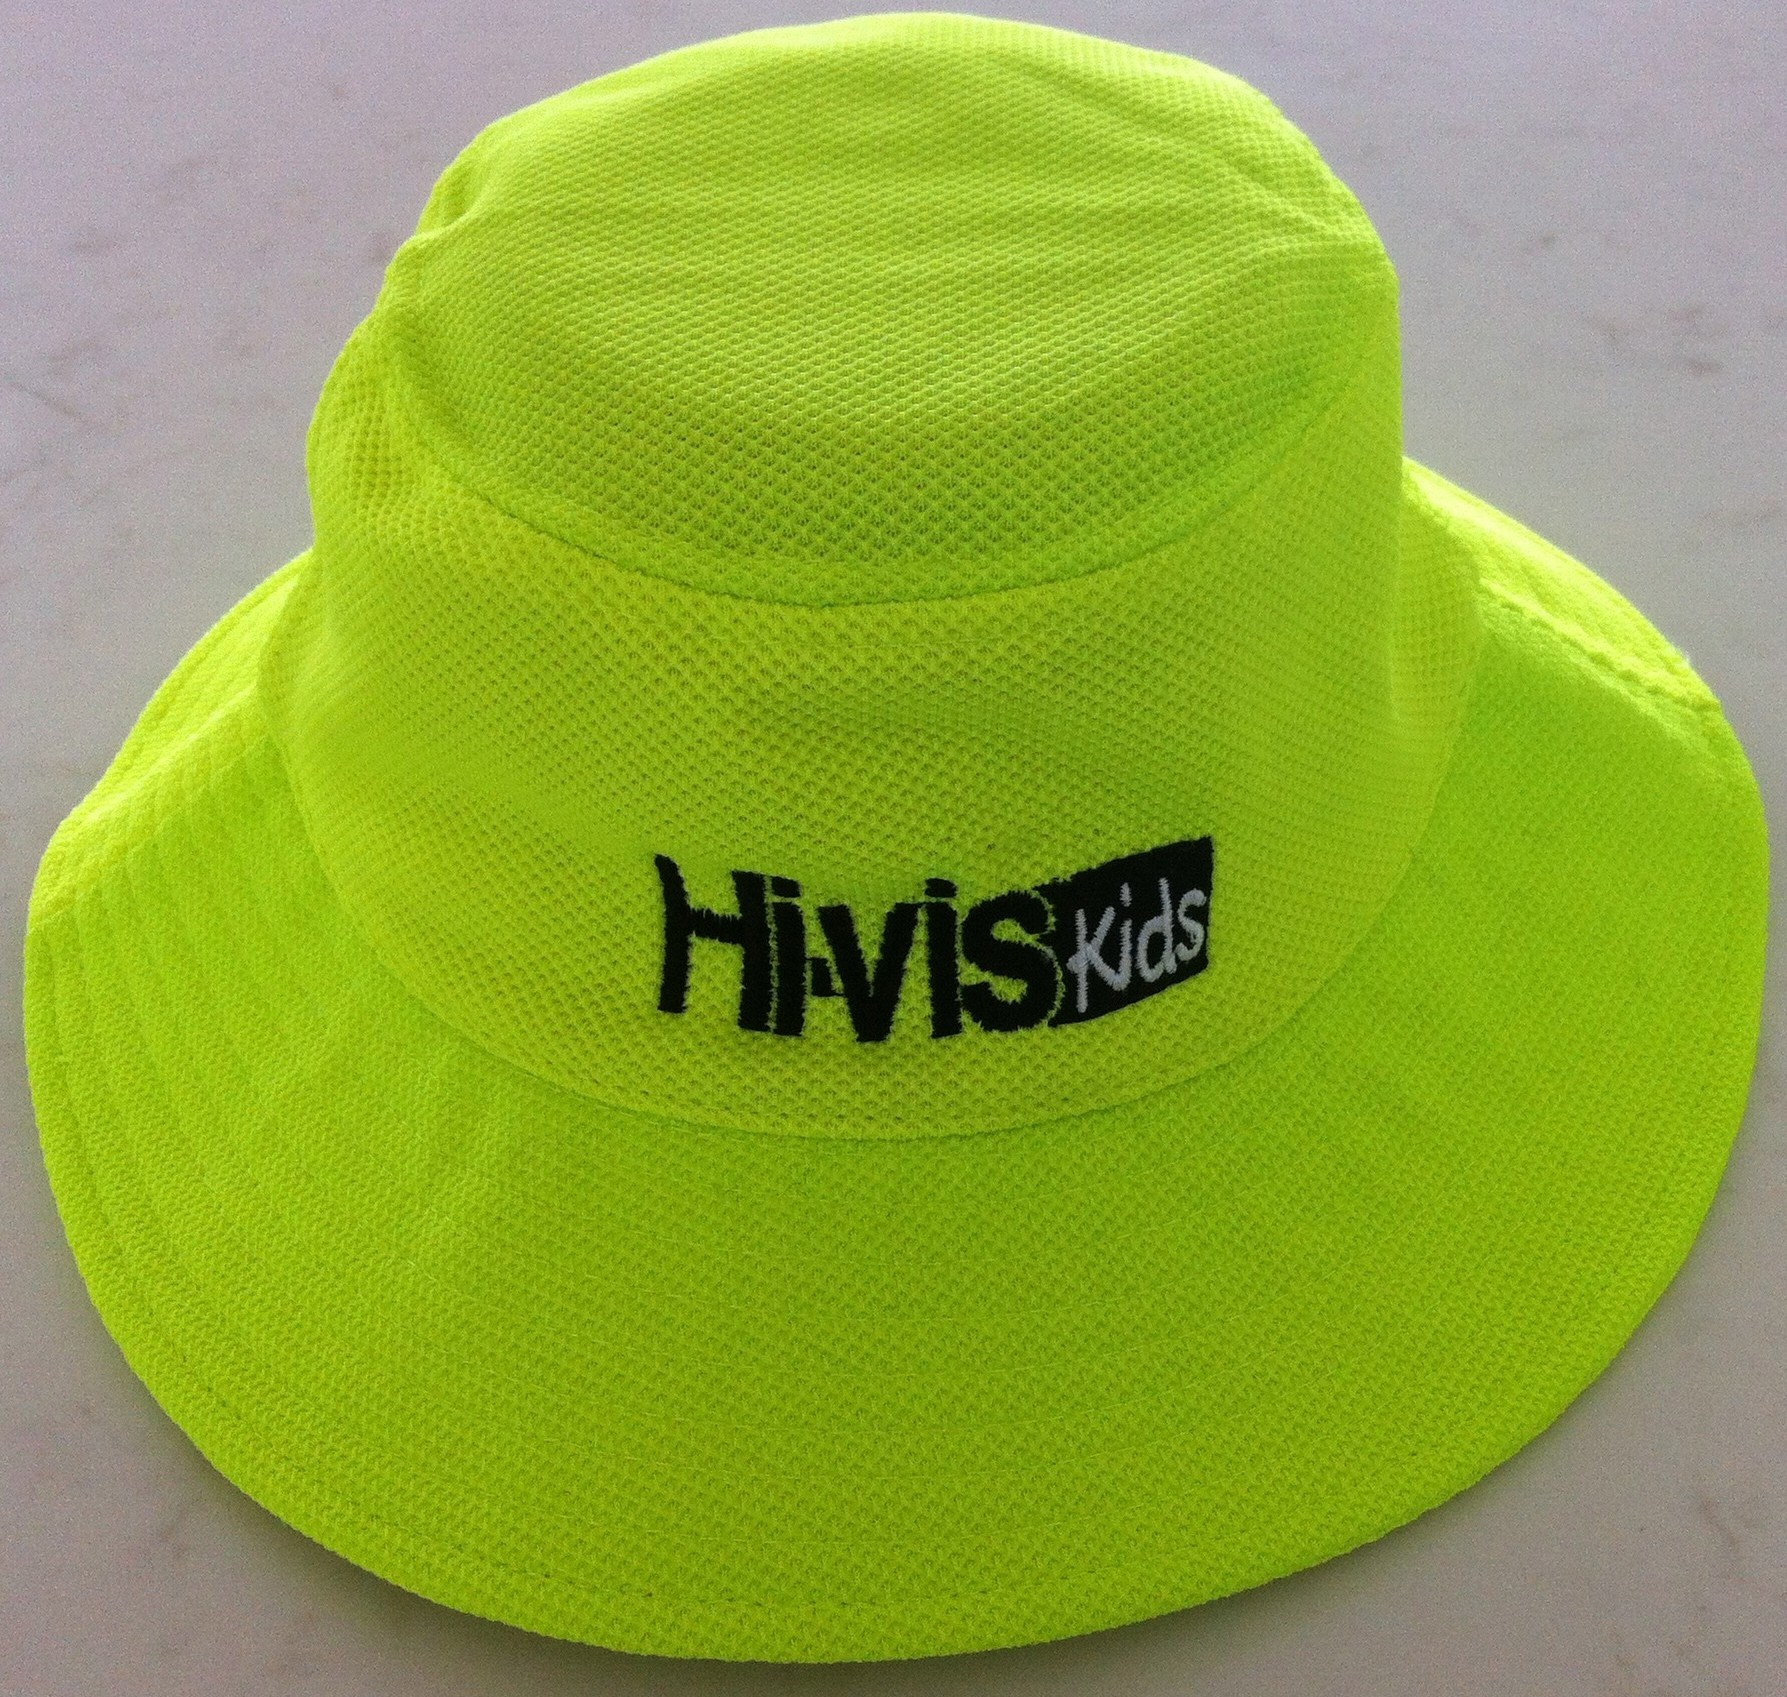 Quality safety hats for children l Hi-vis kids Safety Hat - Yellow